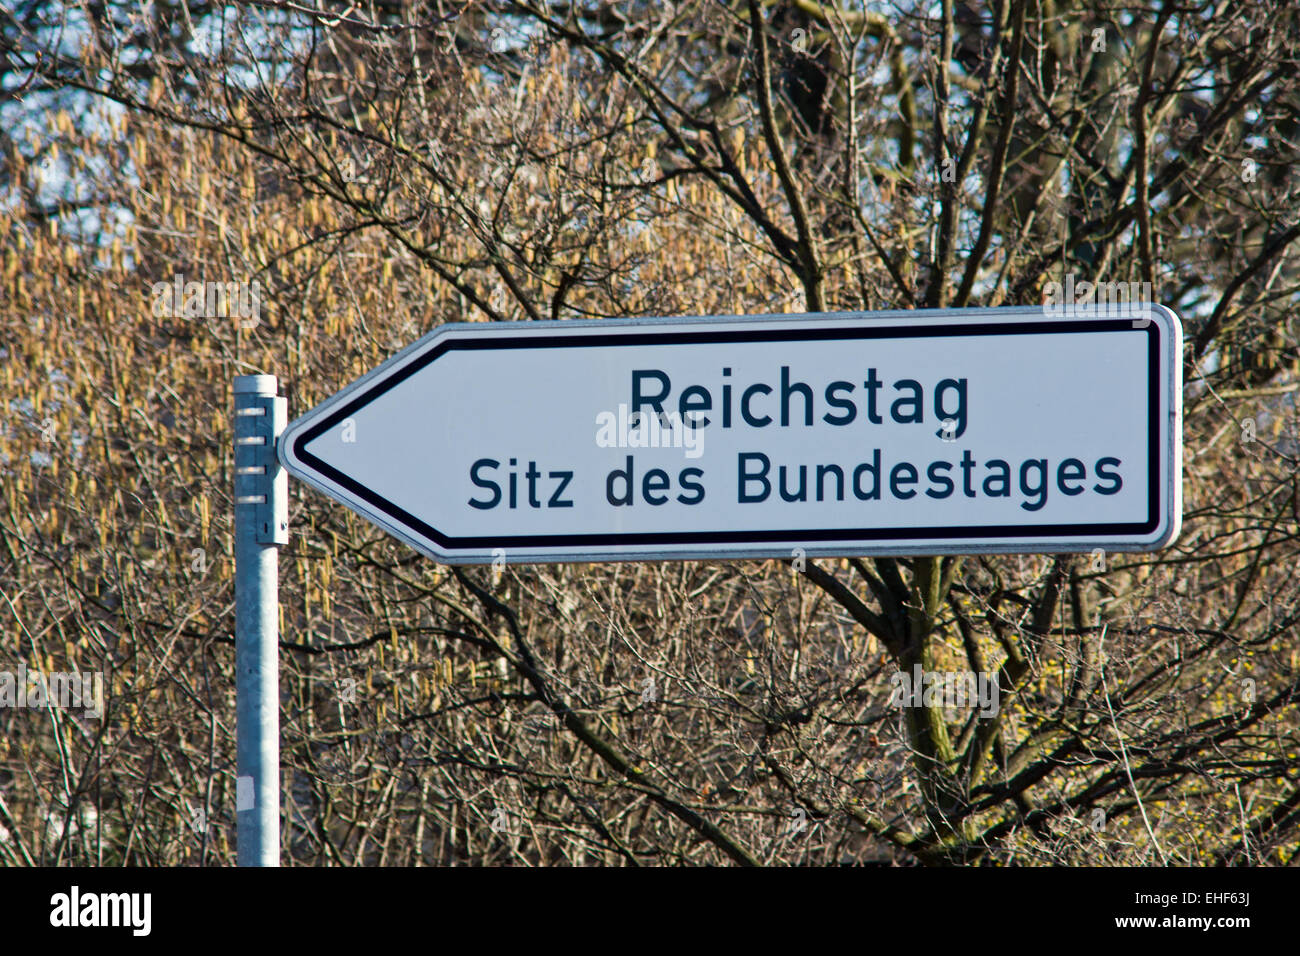 Sign showing the way to the Reichstag - Stock Image